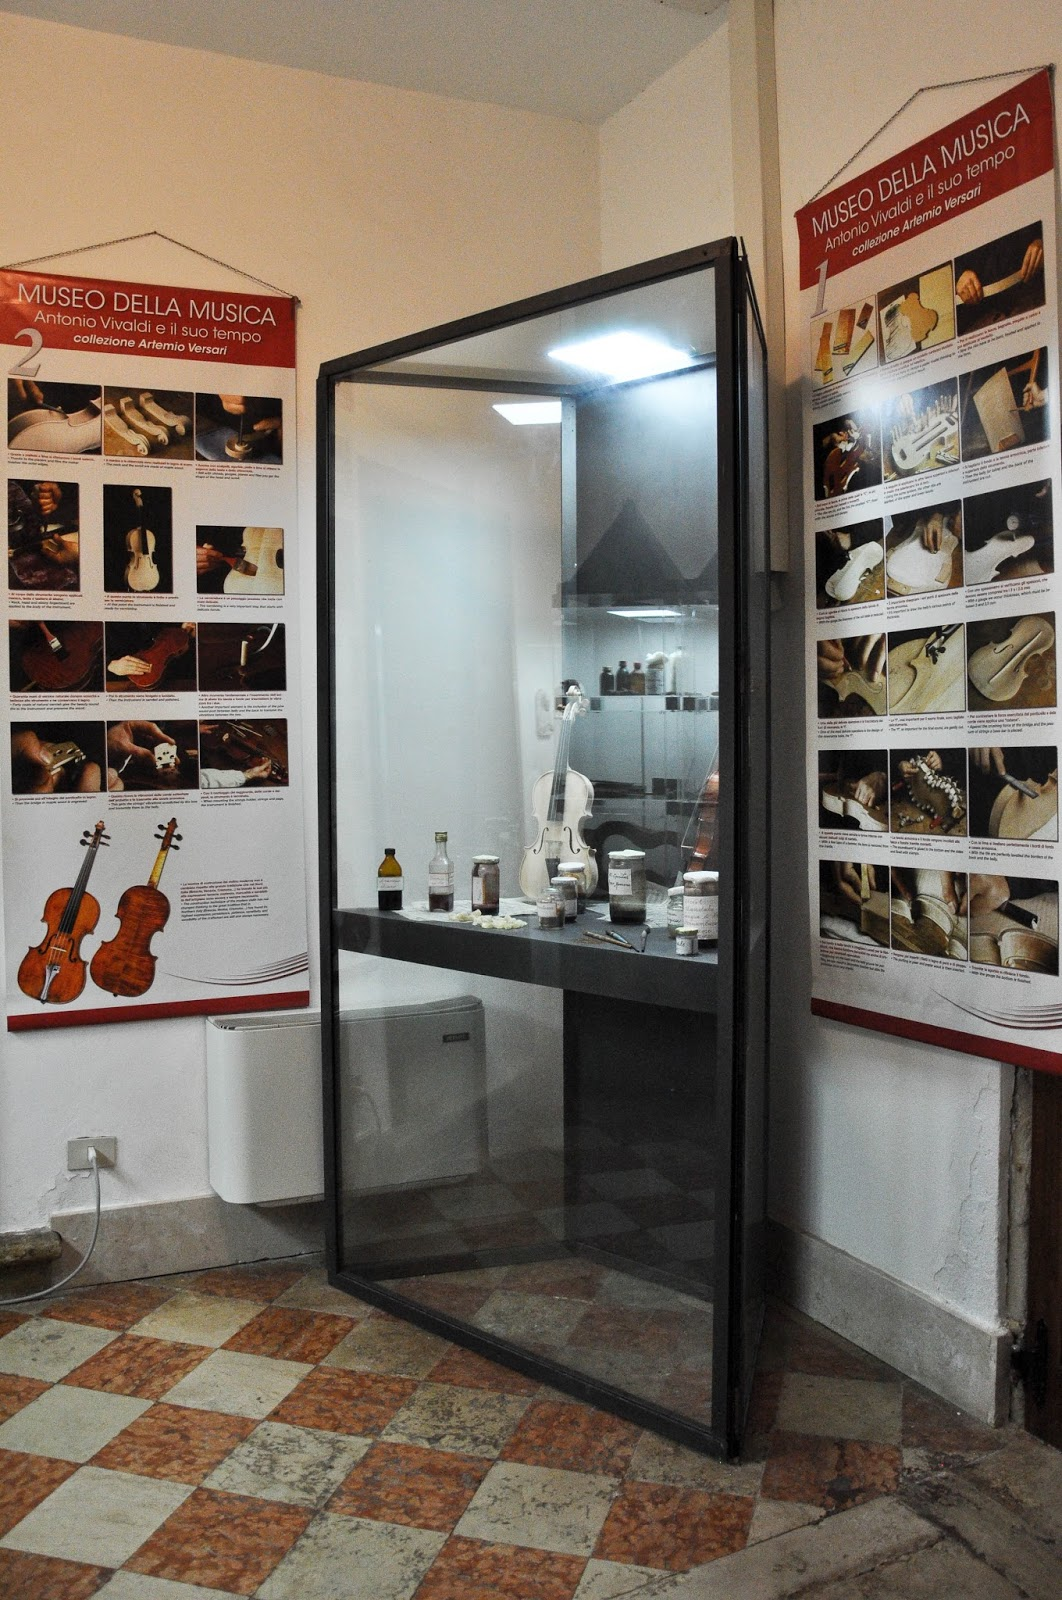 An exhibit case, Museum of the Music, Venice, Italy